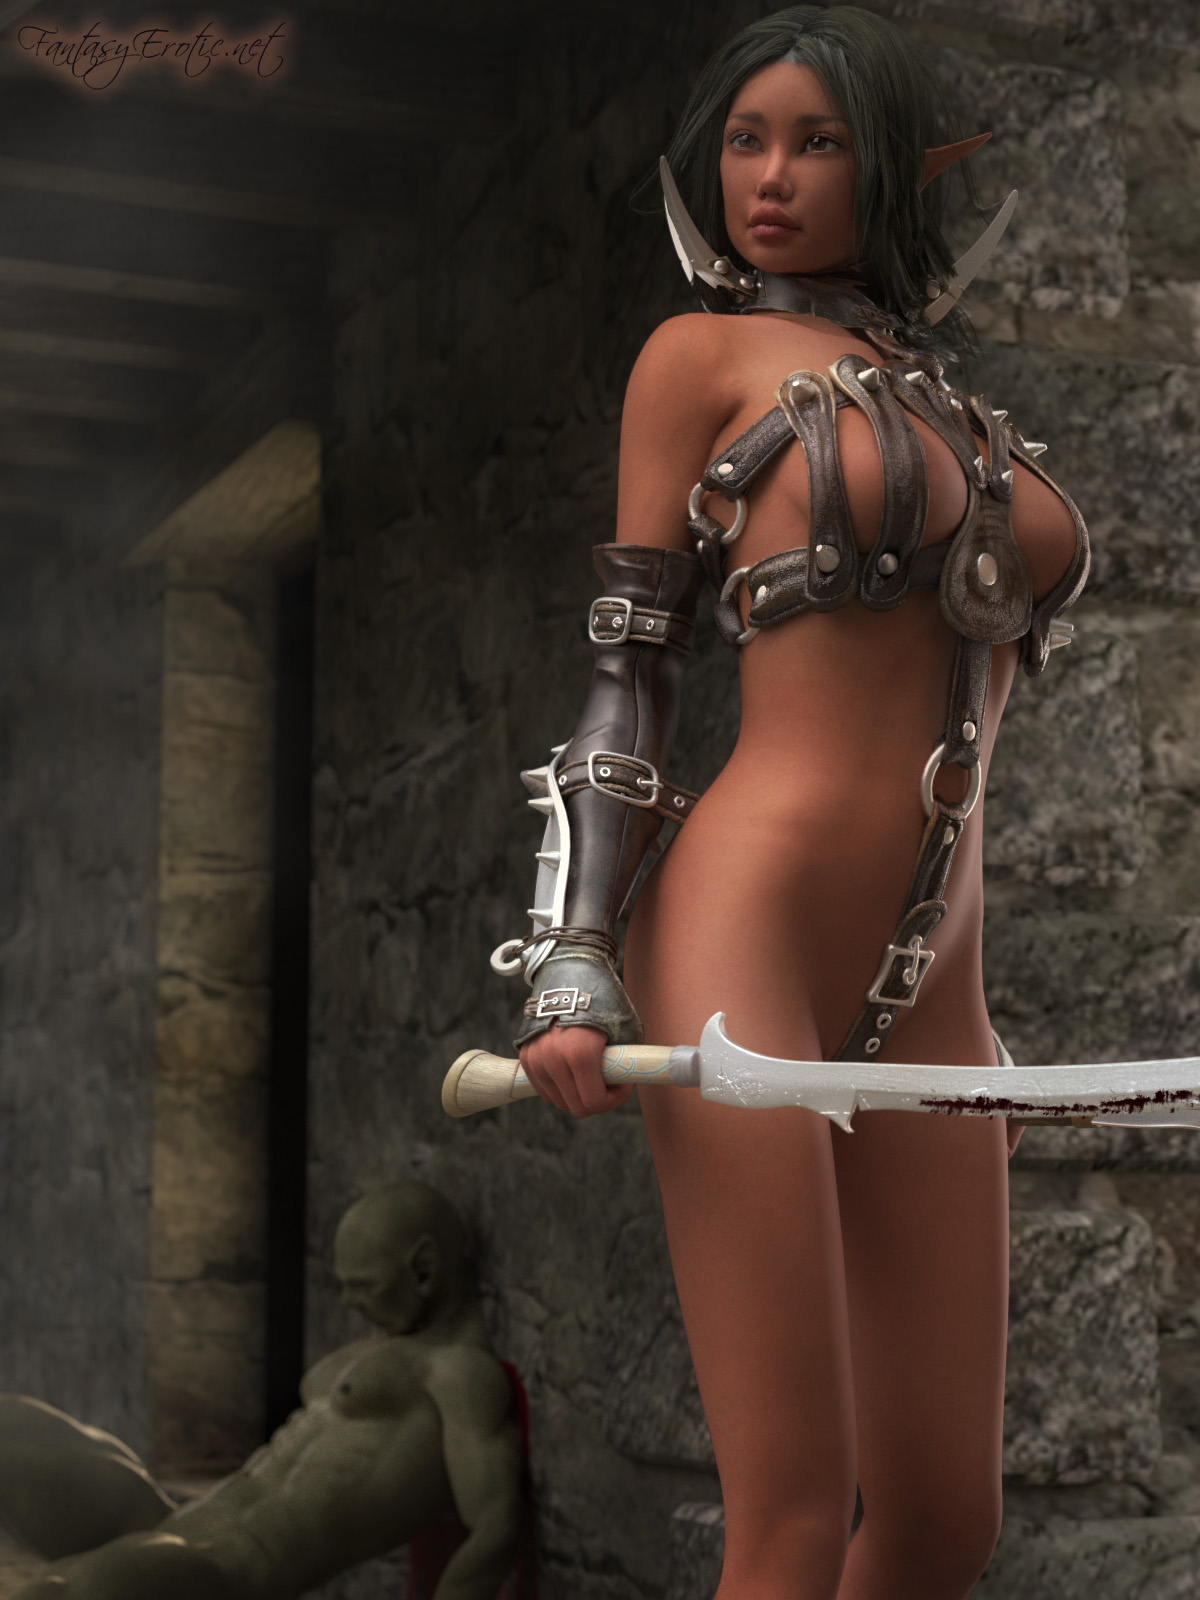 Fantasy warrior sex videos pornos slaves